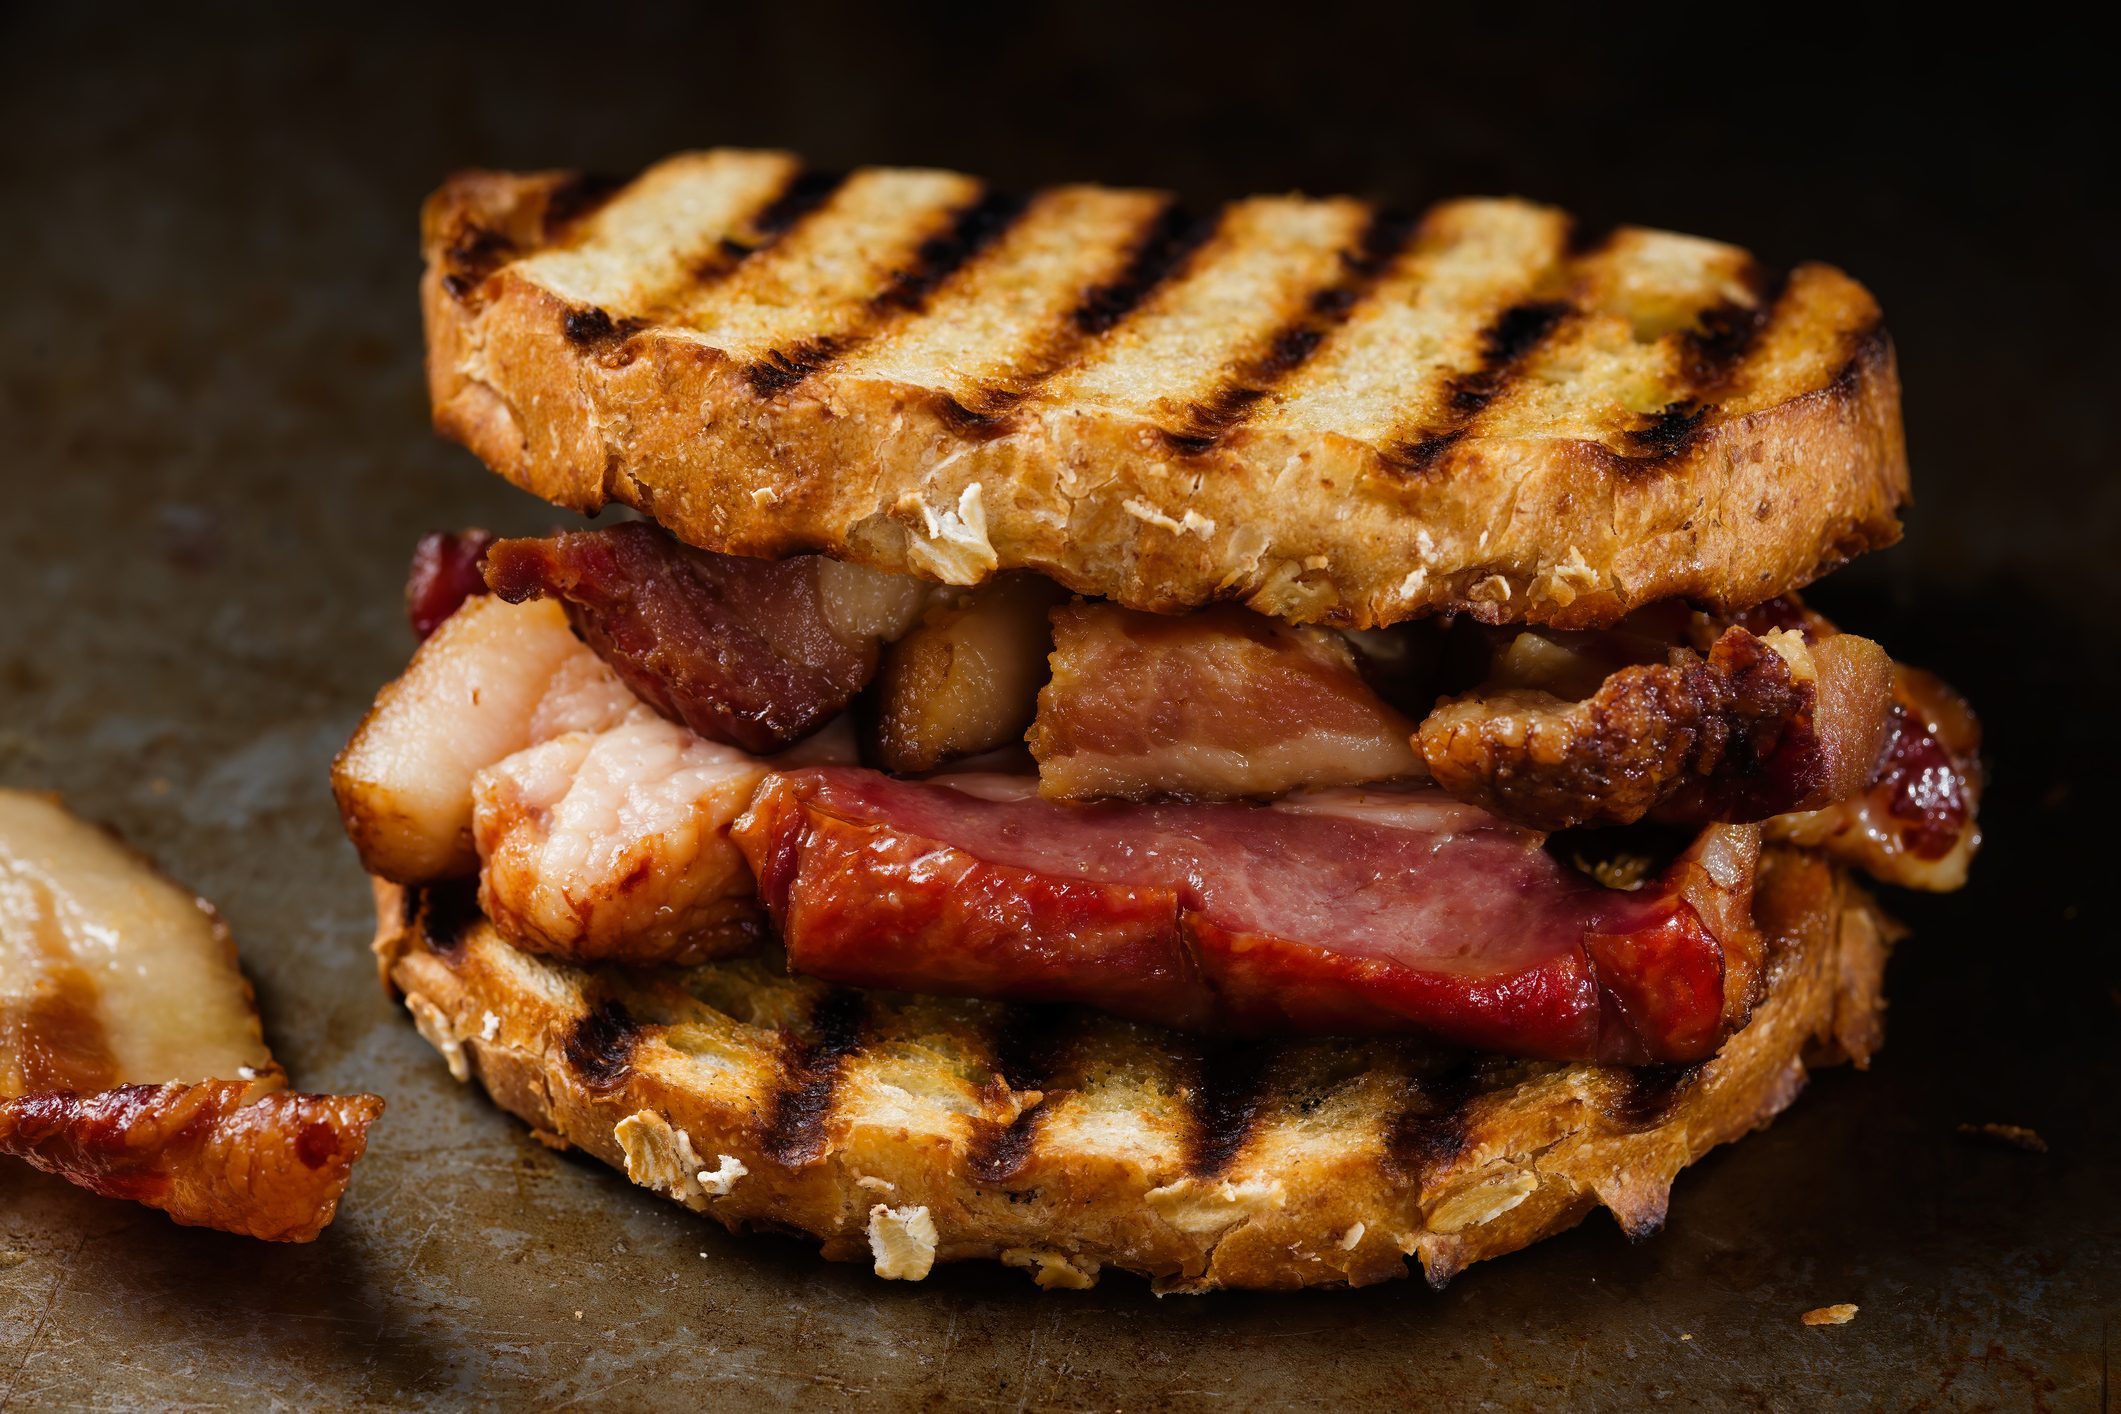 bacon-butty-street-food